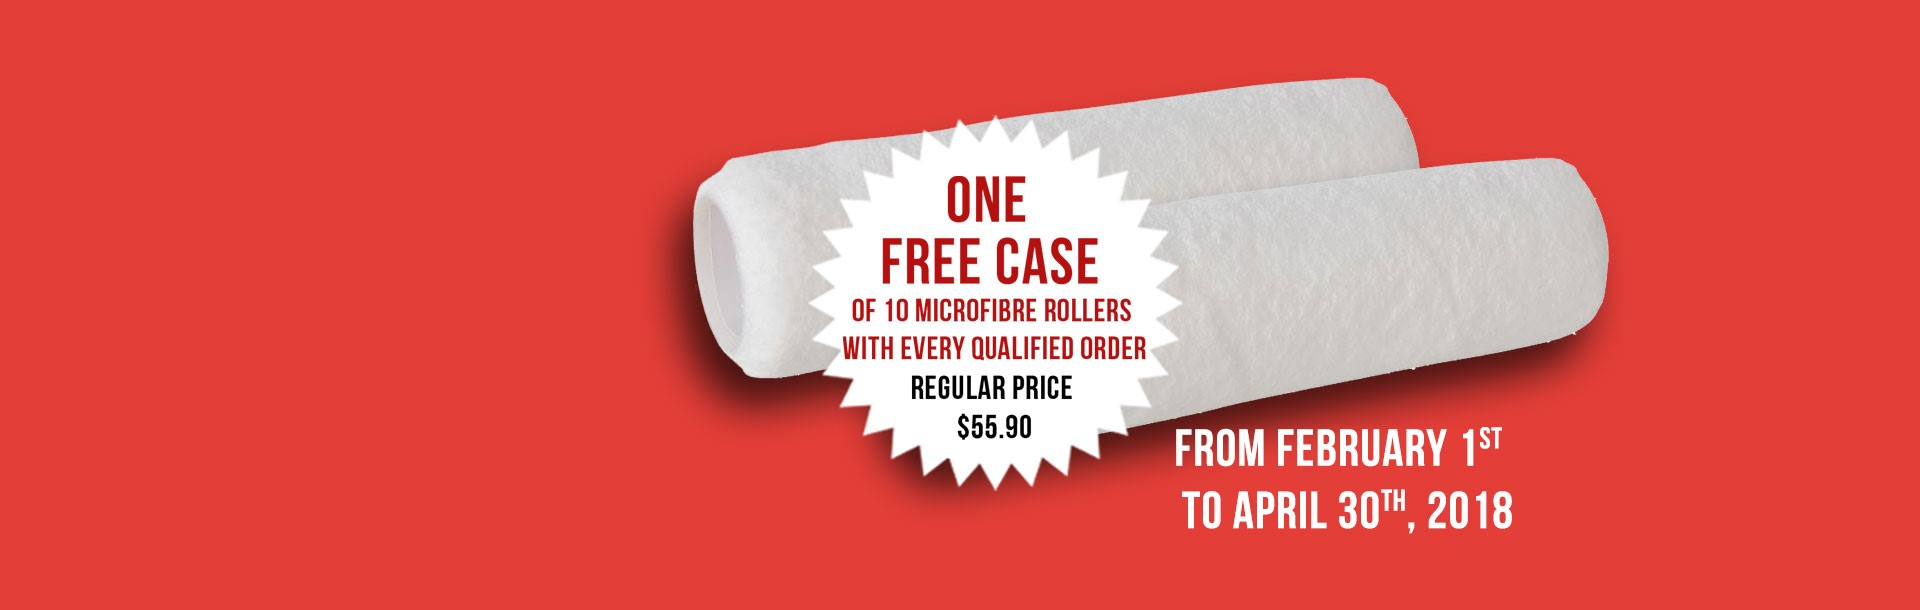 Get one free case of rollers with your purchase